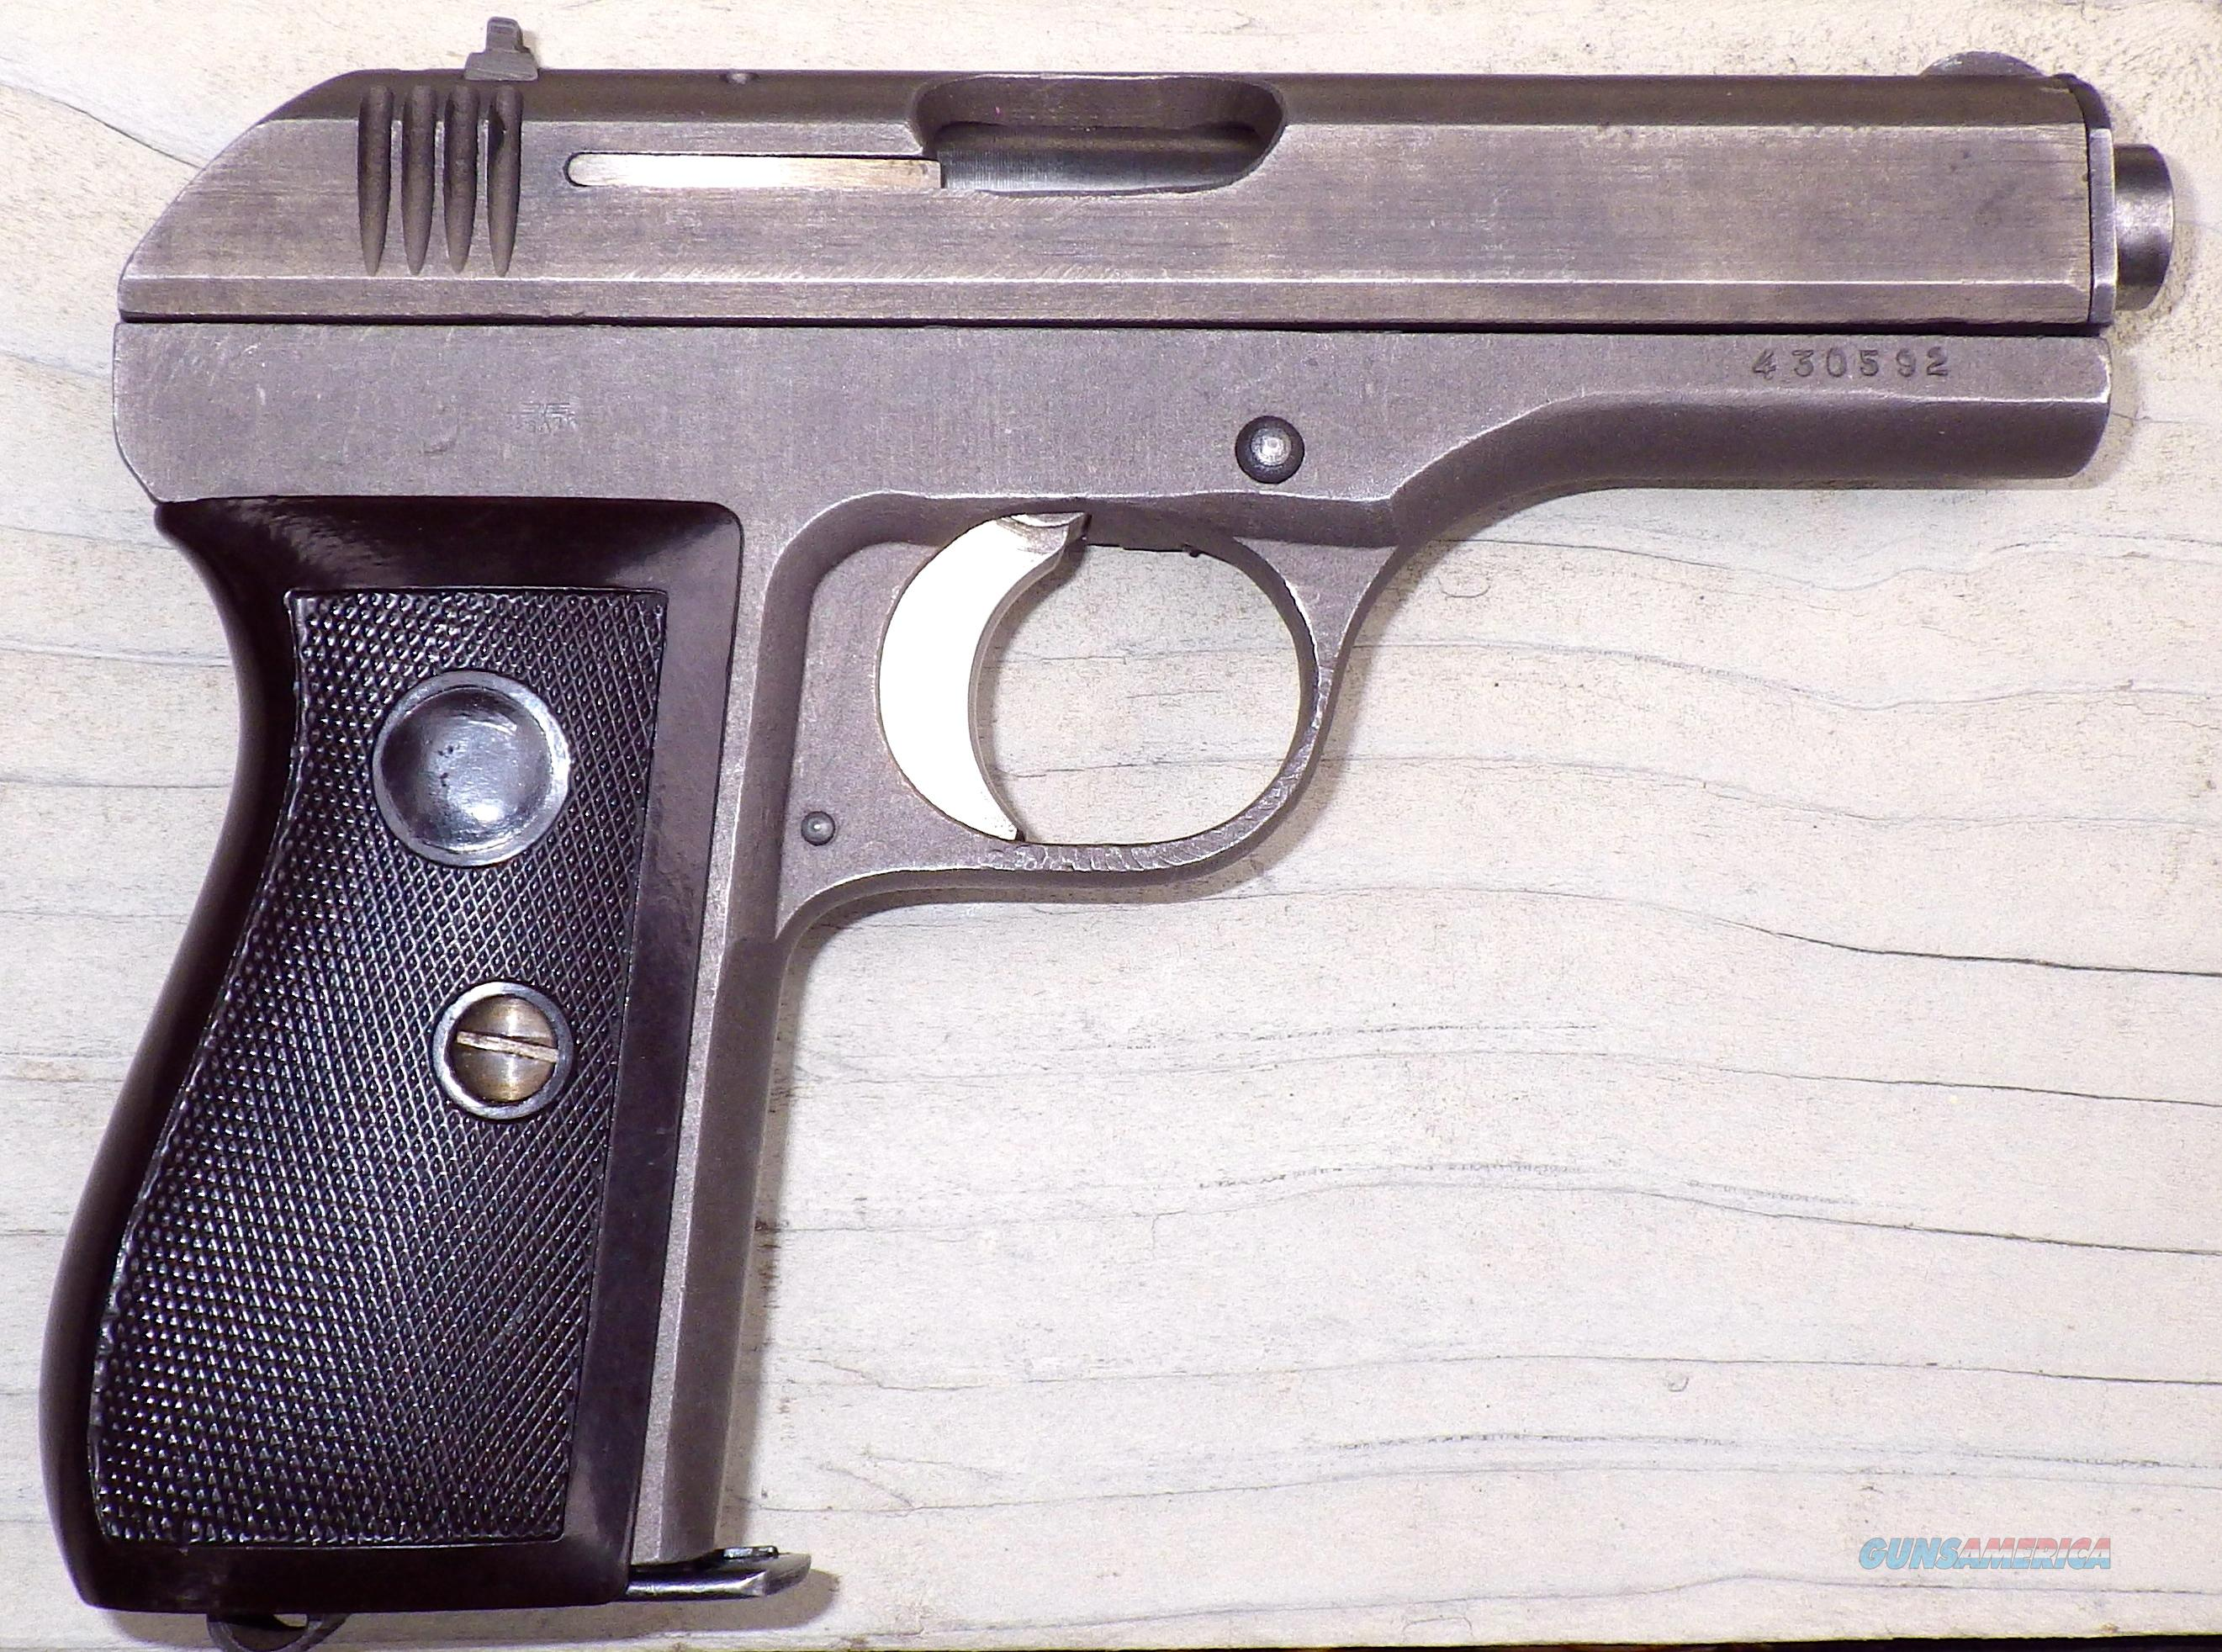 FNH Model 27 7.65mm, Phosphate finish, matching numbers, strong bore  Guns > Pistols > FNH - Fabrique Nationale (FN) Pistols > Pre-War